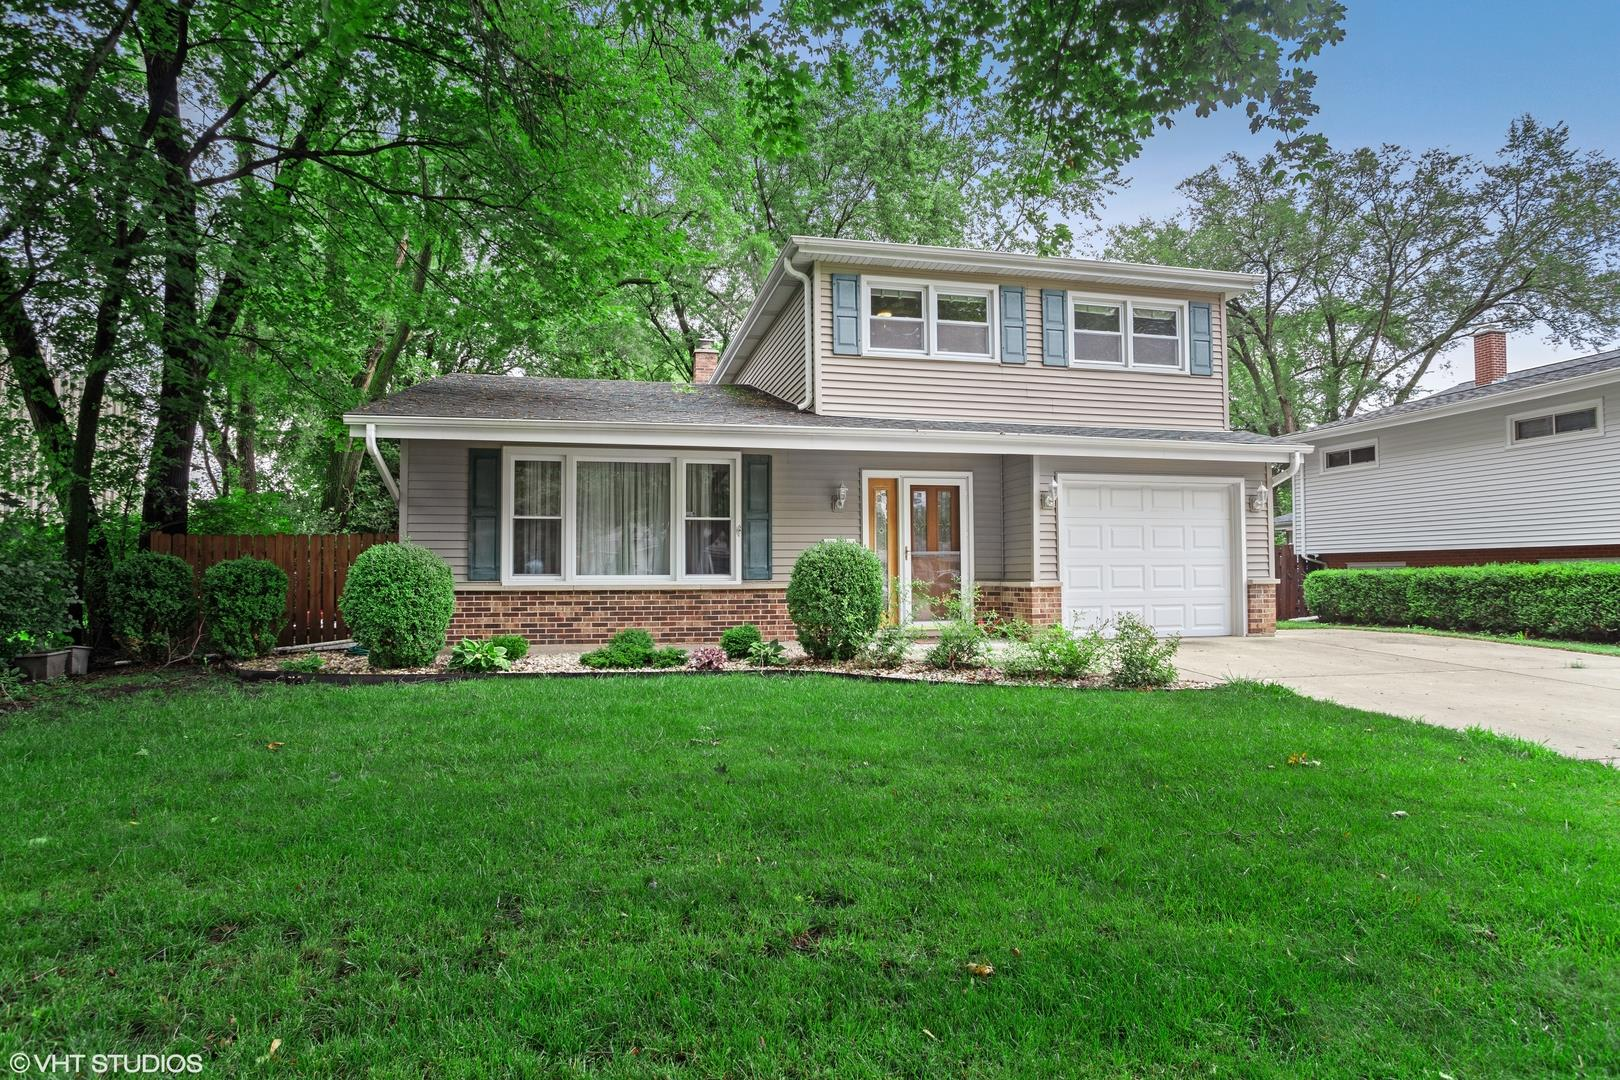 129 S Wilke Road, Arlington Heights, IL 60005 - #: 10935468